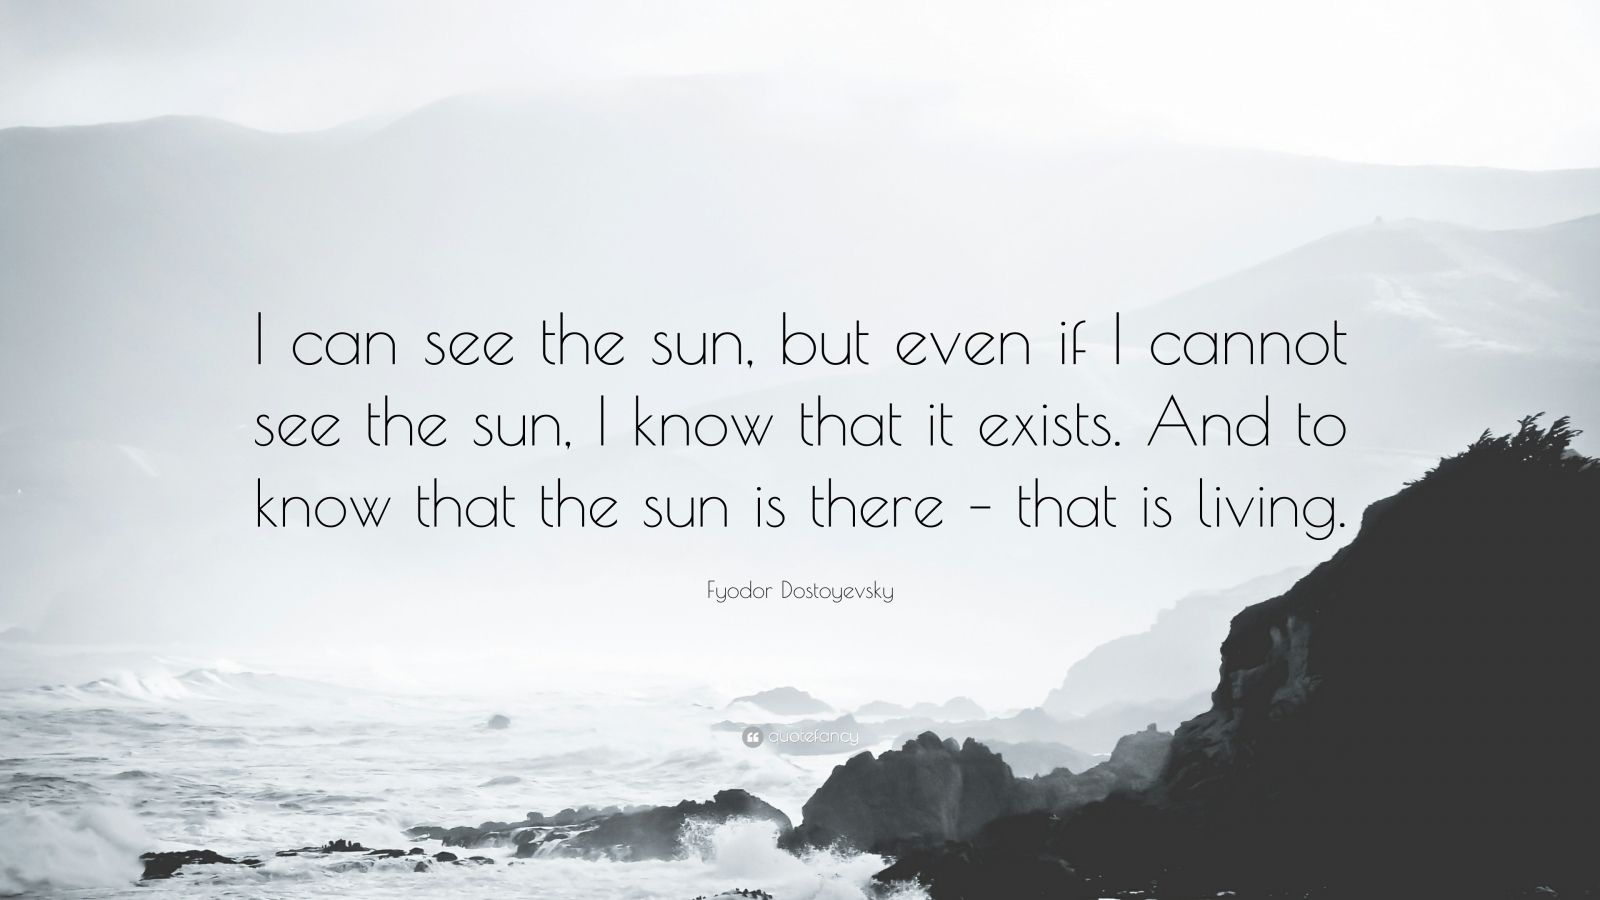 """Fyodor Dostoyevsky Quote: """"I can see the sun, but even if I cannot see the sun, I know that it exists. And to know that the sun is there – that is living."""""""